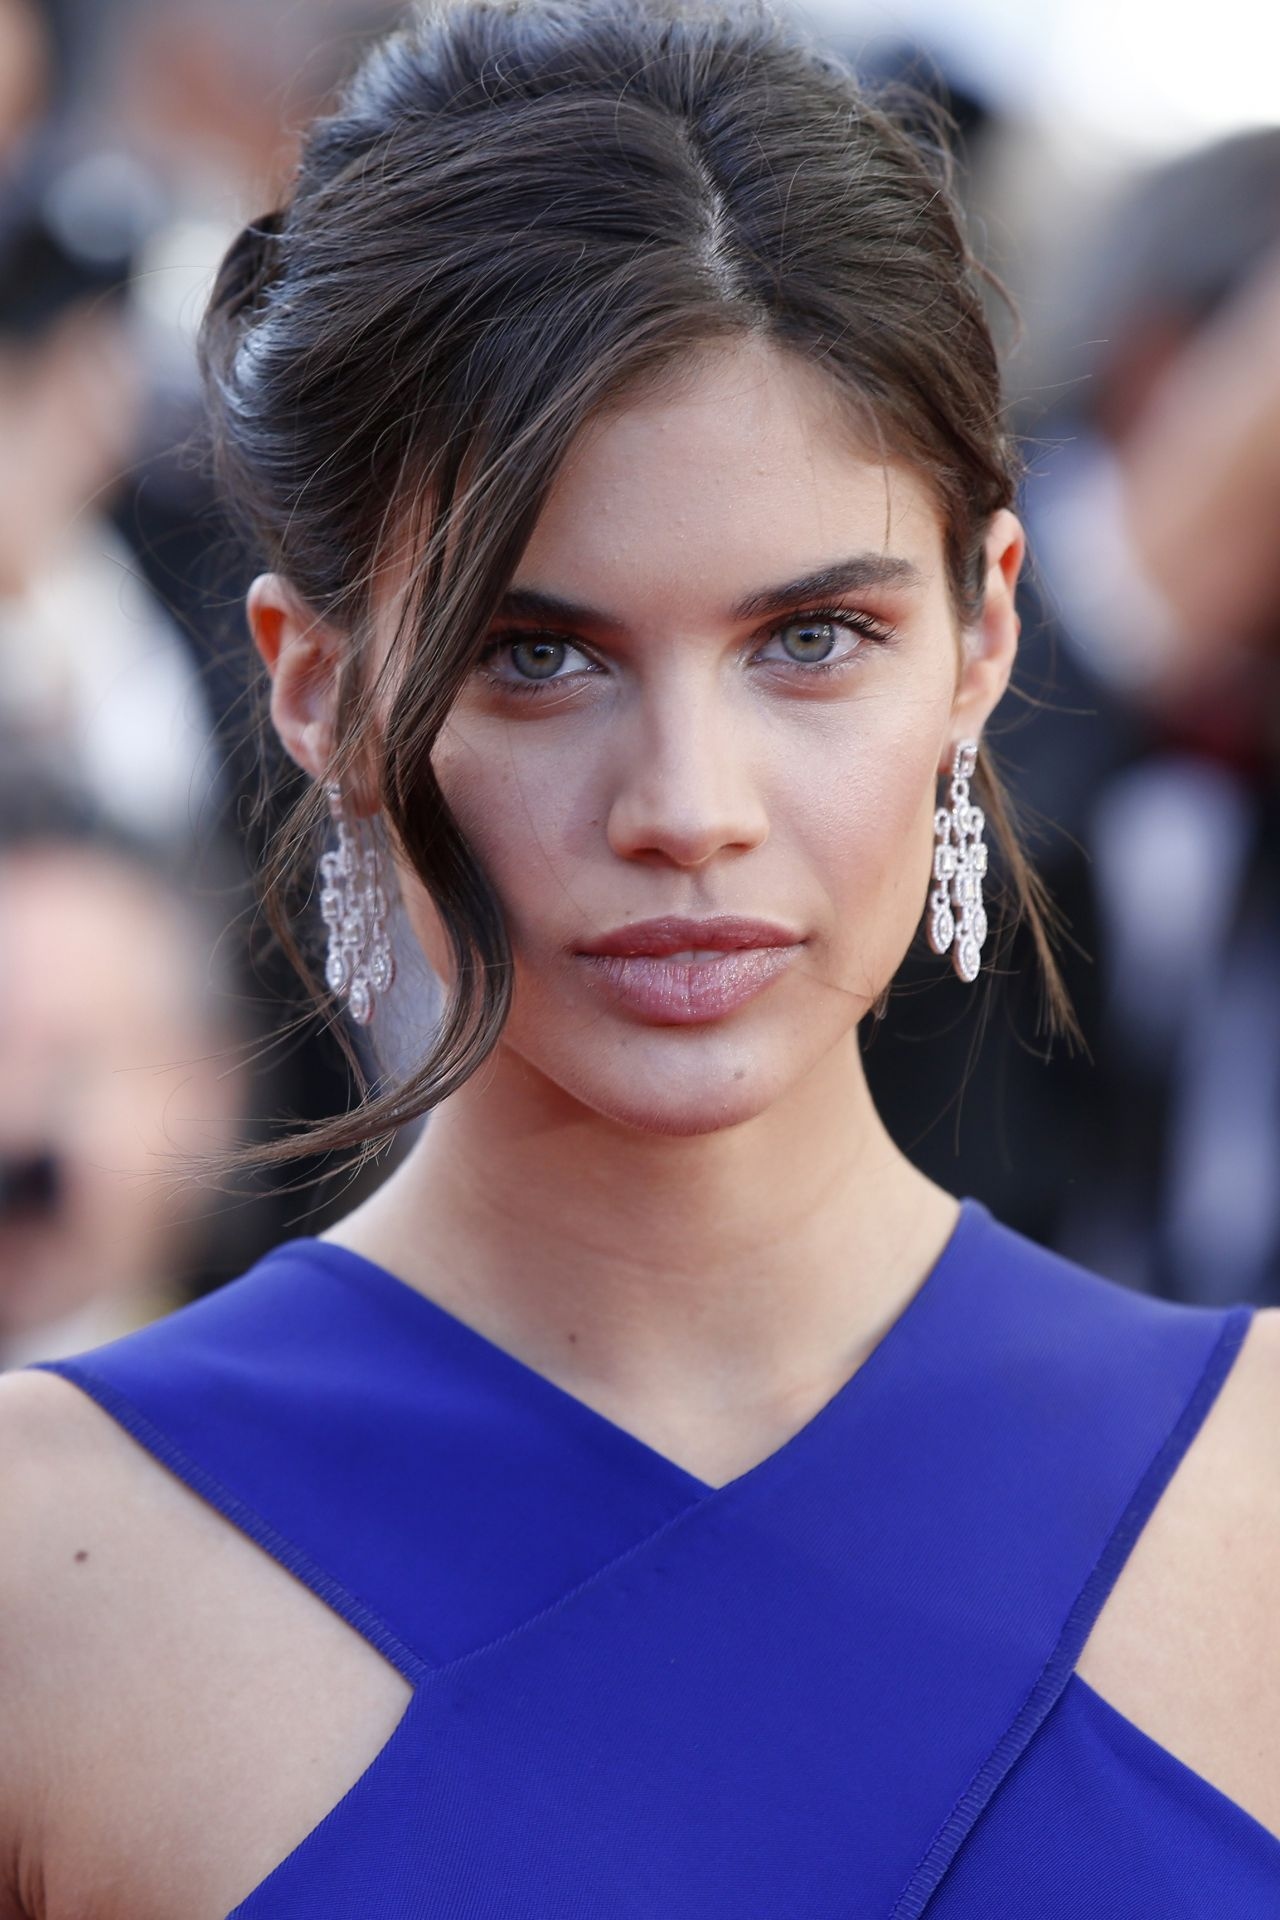 Sara Sampaio Youth Premiere At 2015 Cannes Film Festivala